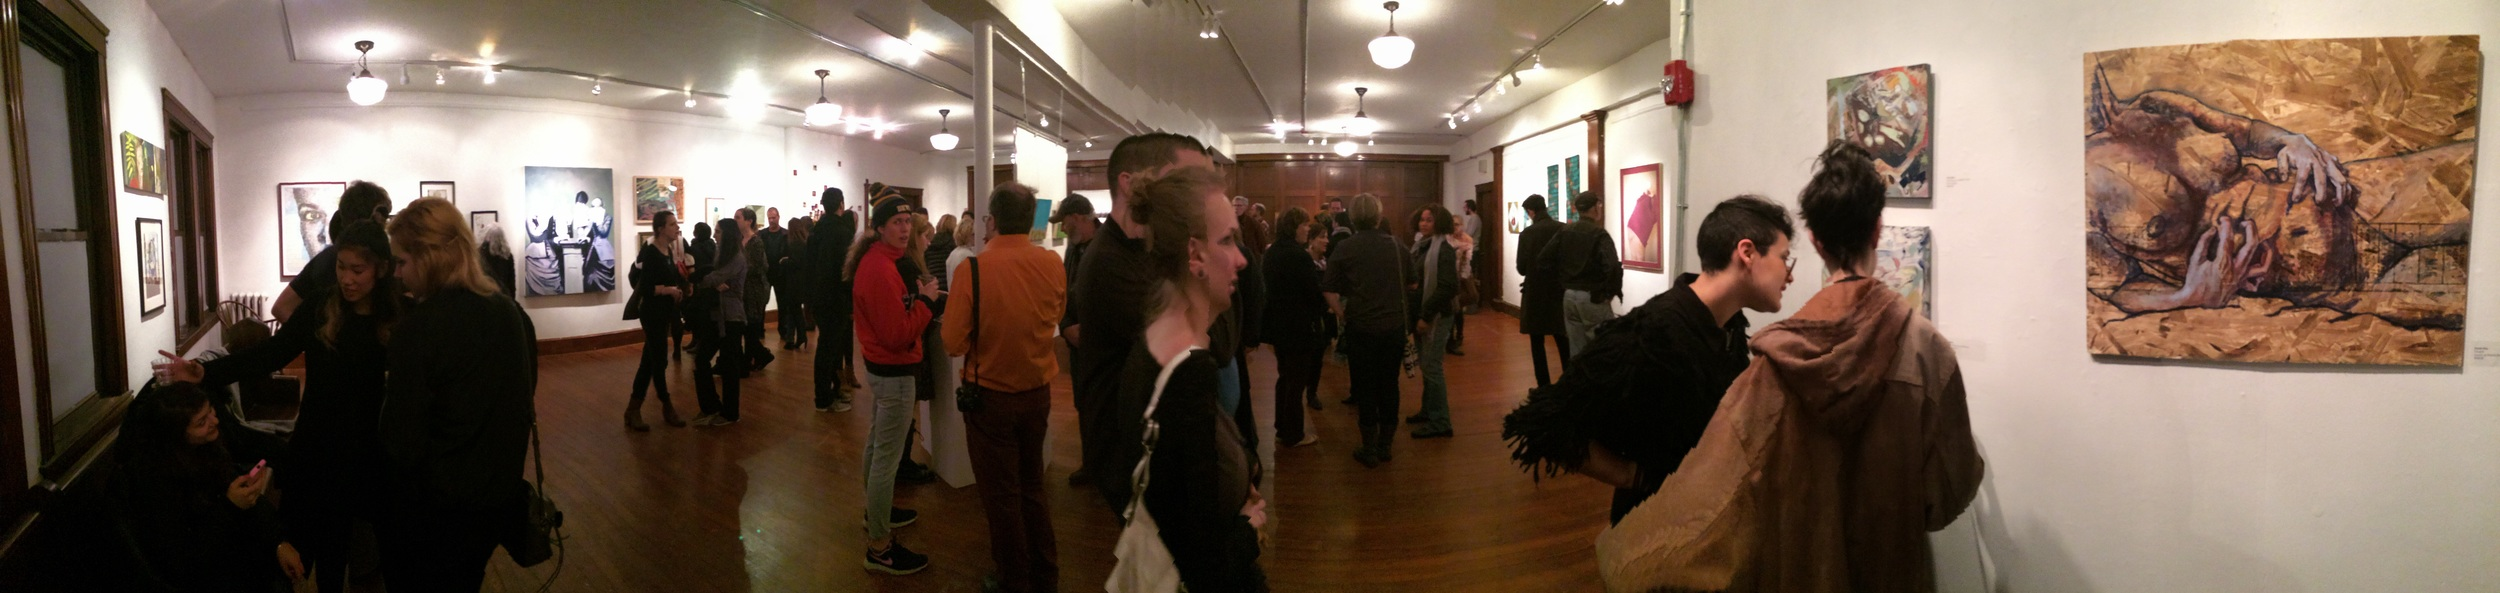 A panorama from last night's opening